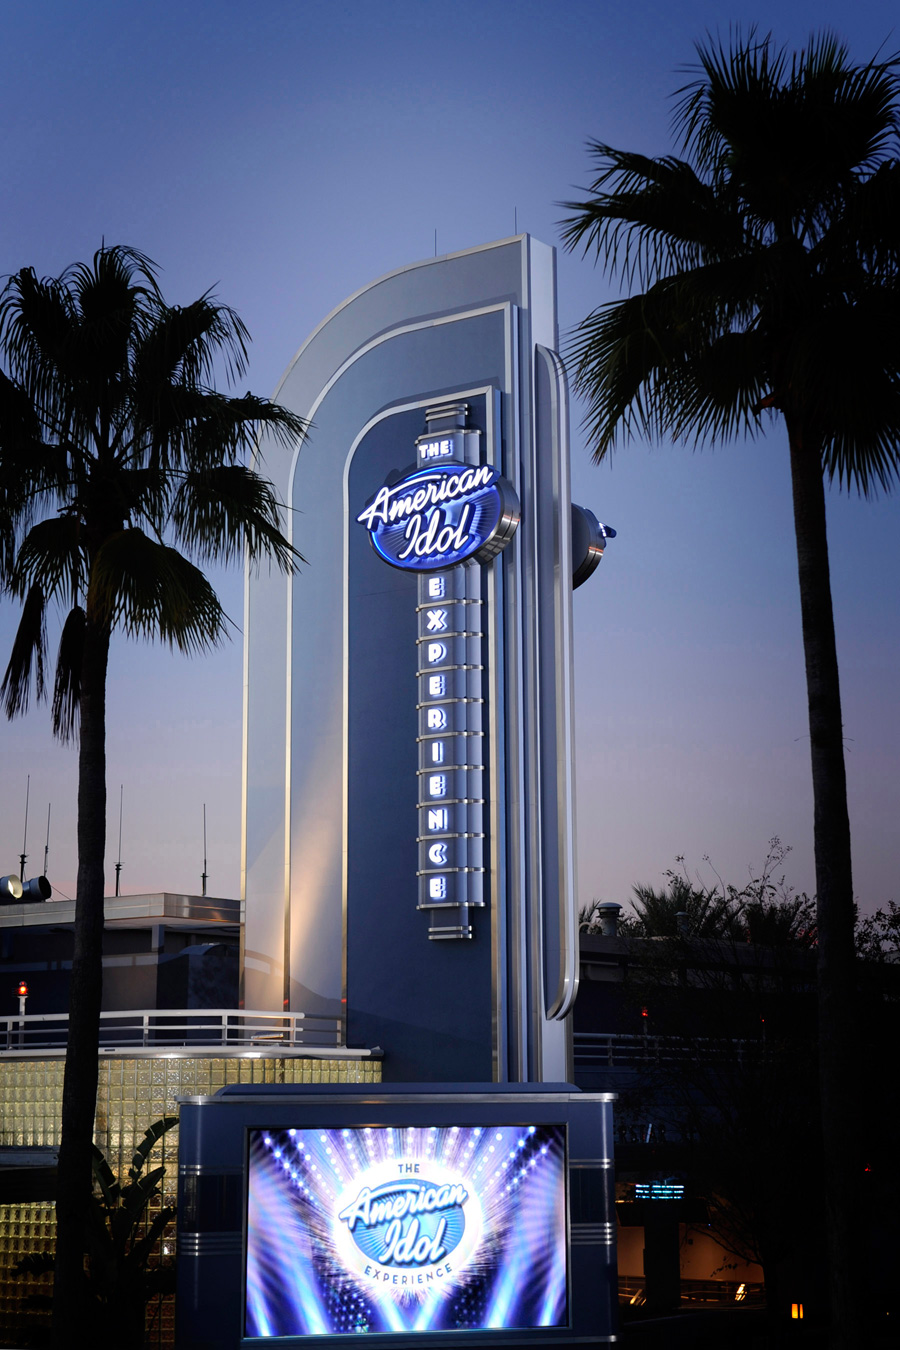 American Idol Experience Adds New Songs to its Playlist